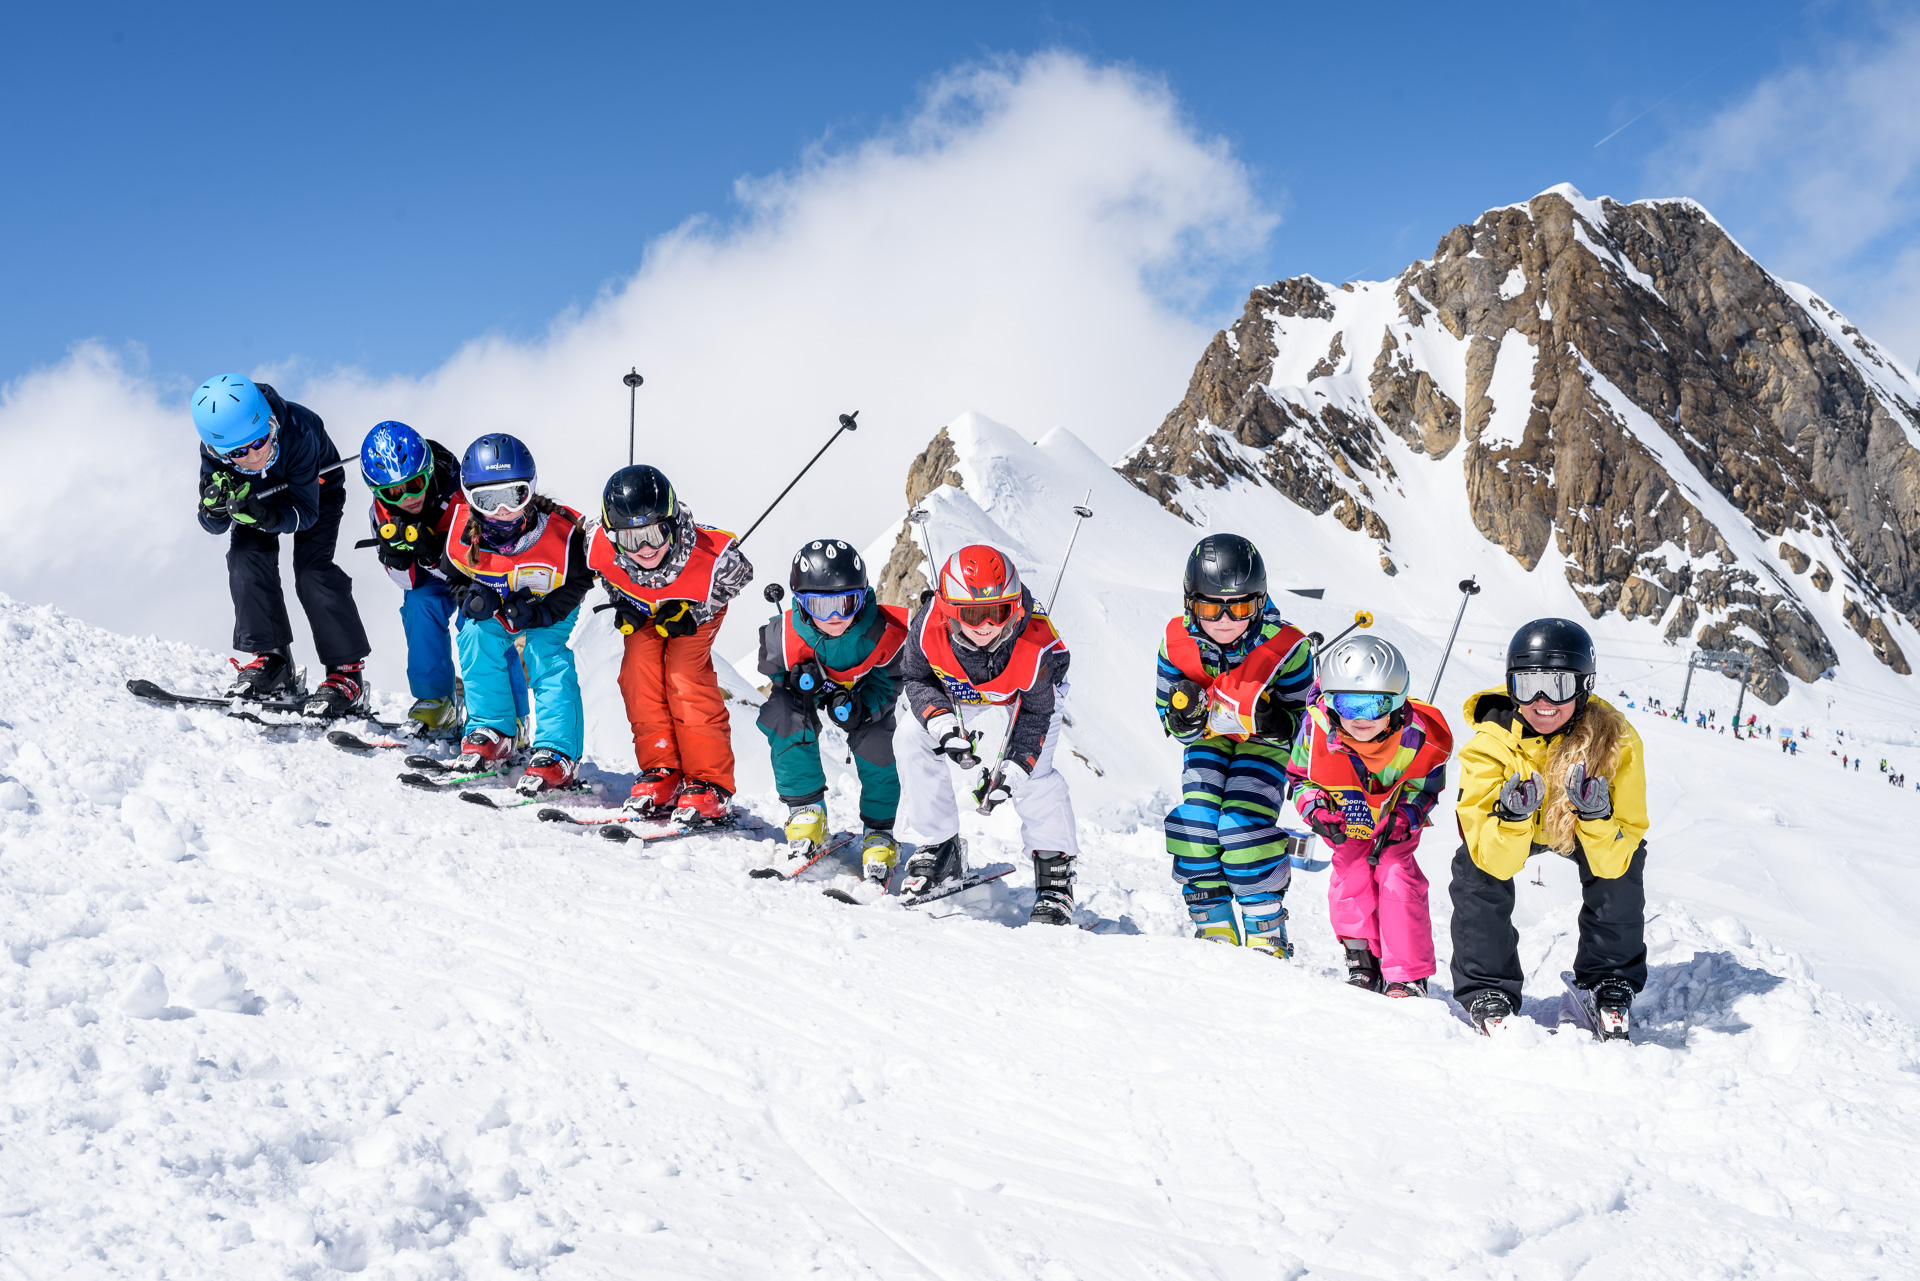 All in One Ski - Kind/Child, 3 Tage/Days Kurs/Course & 7 Tage/Days Rent